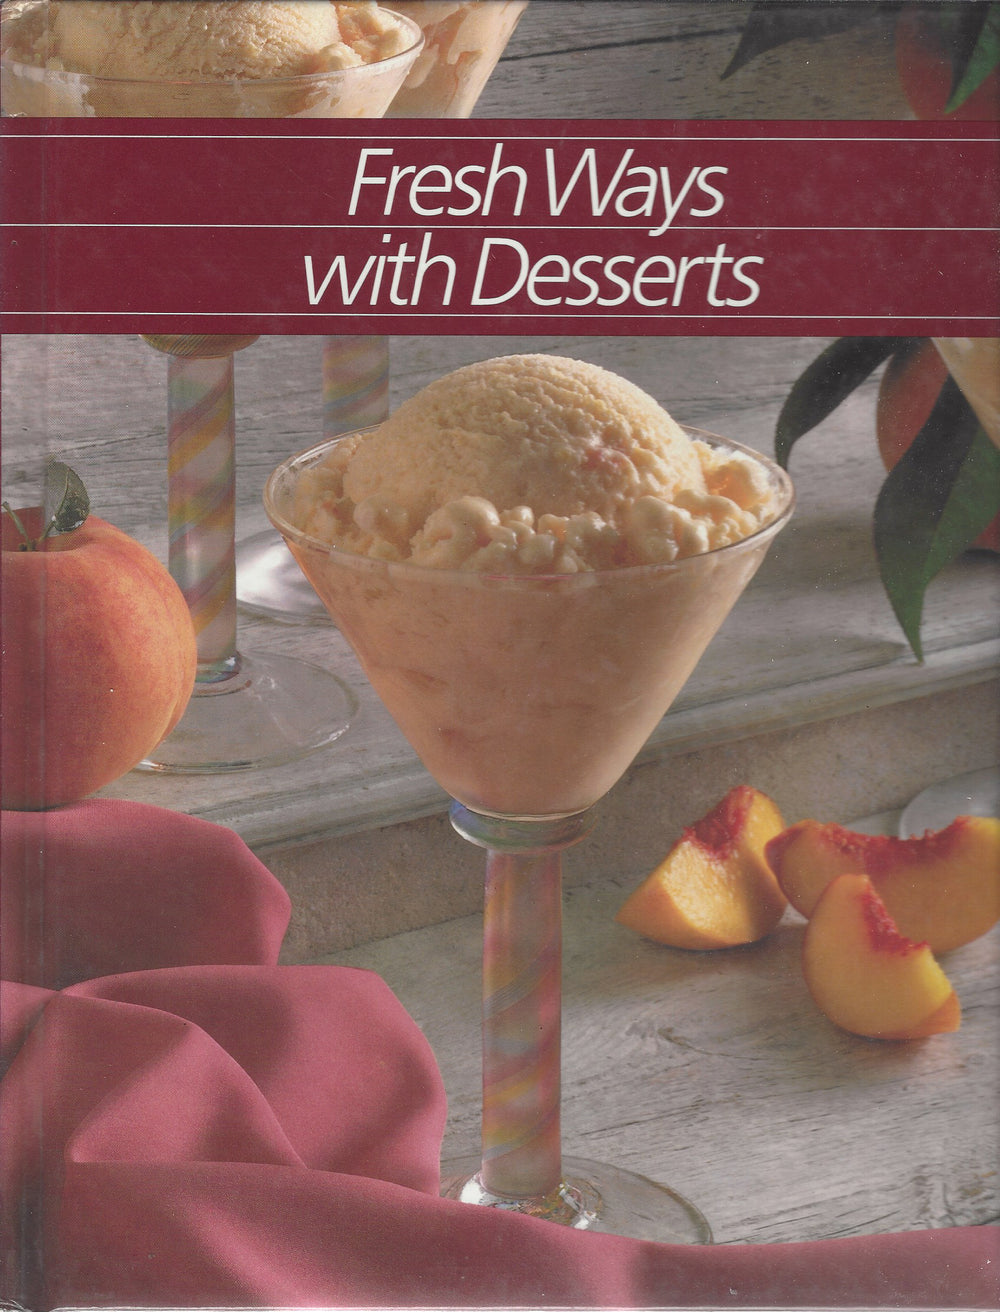 TIME-LIFE: Healthy Home Cooking; Fresh Ways with Deserts (1986)